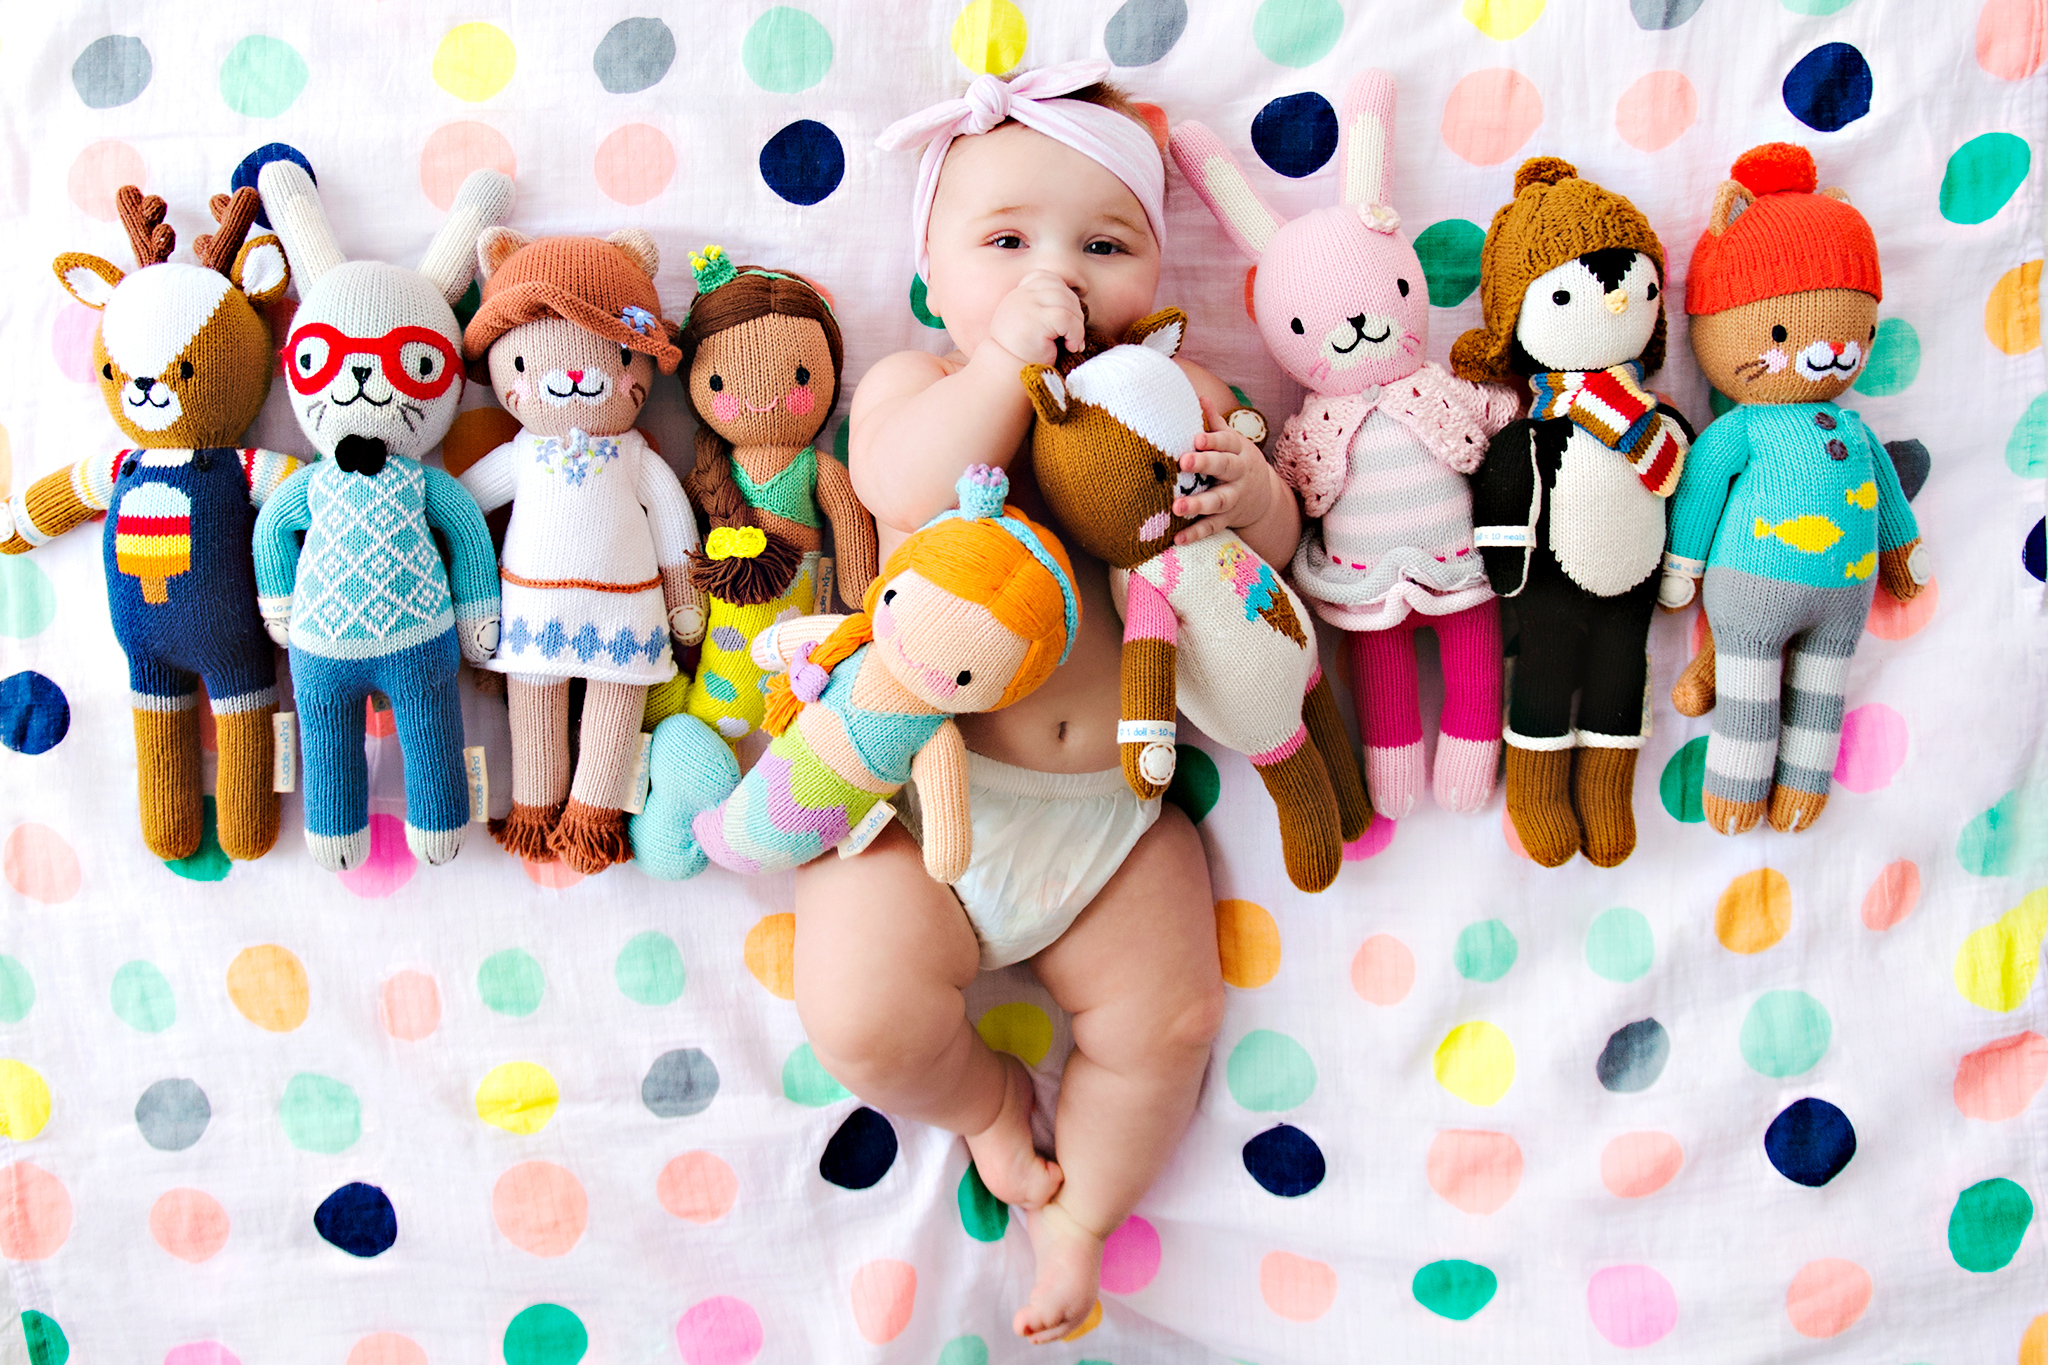 These Cuddle+Kind dolls are so cute and help hungry children in need!